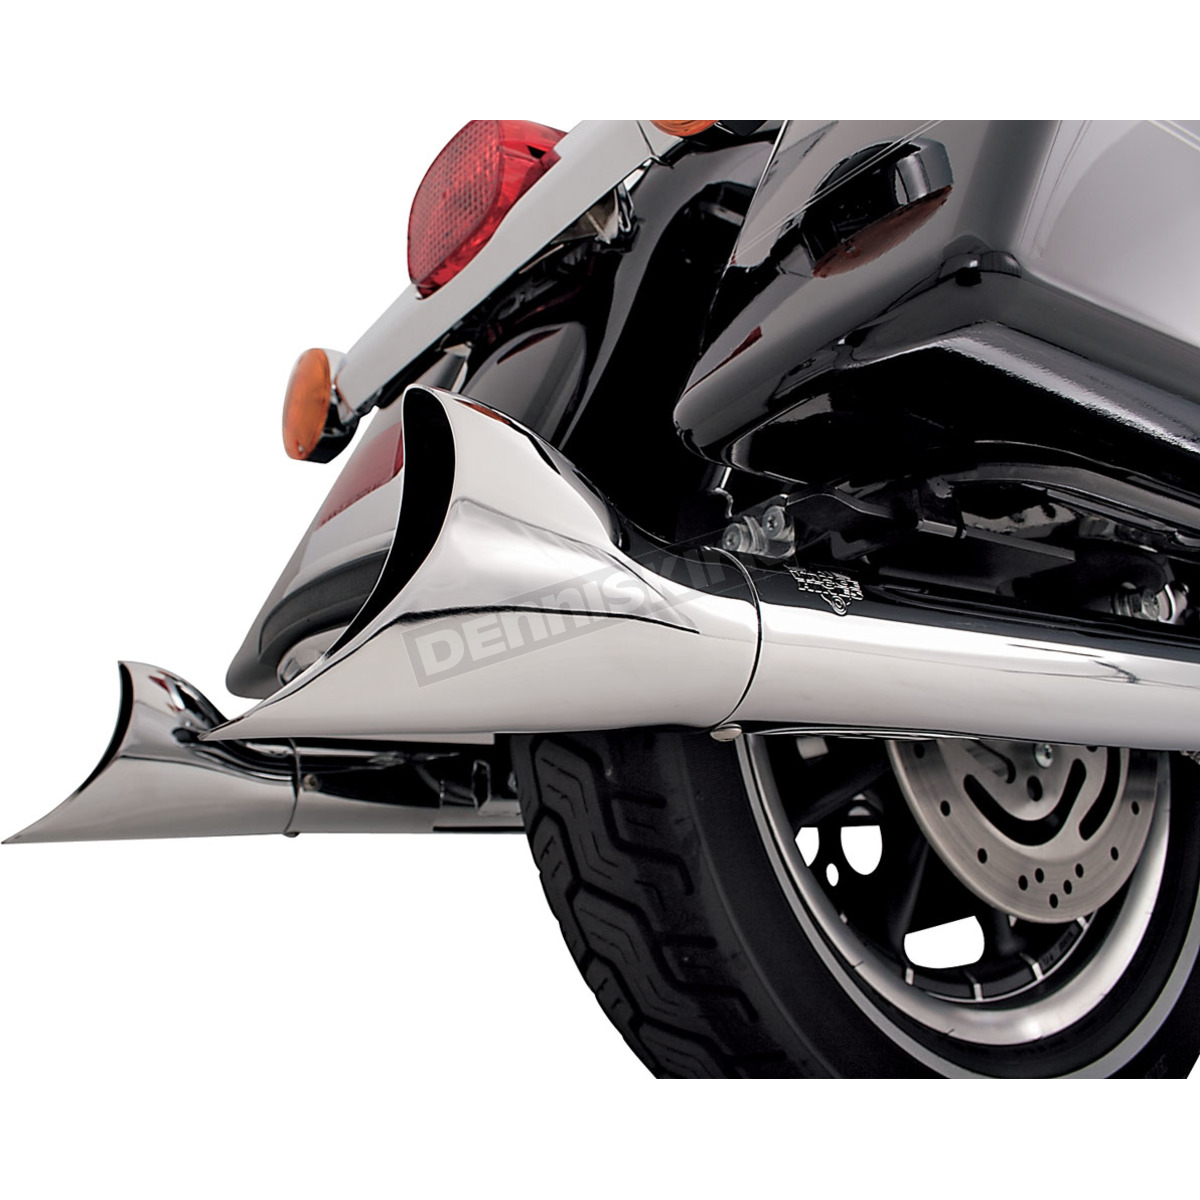 Fishtail II End Caps for Softail Duals Header Pipes w/Straight-Cut Slip-Ons  and Big Shot Dual Exhaust System - 16923